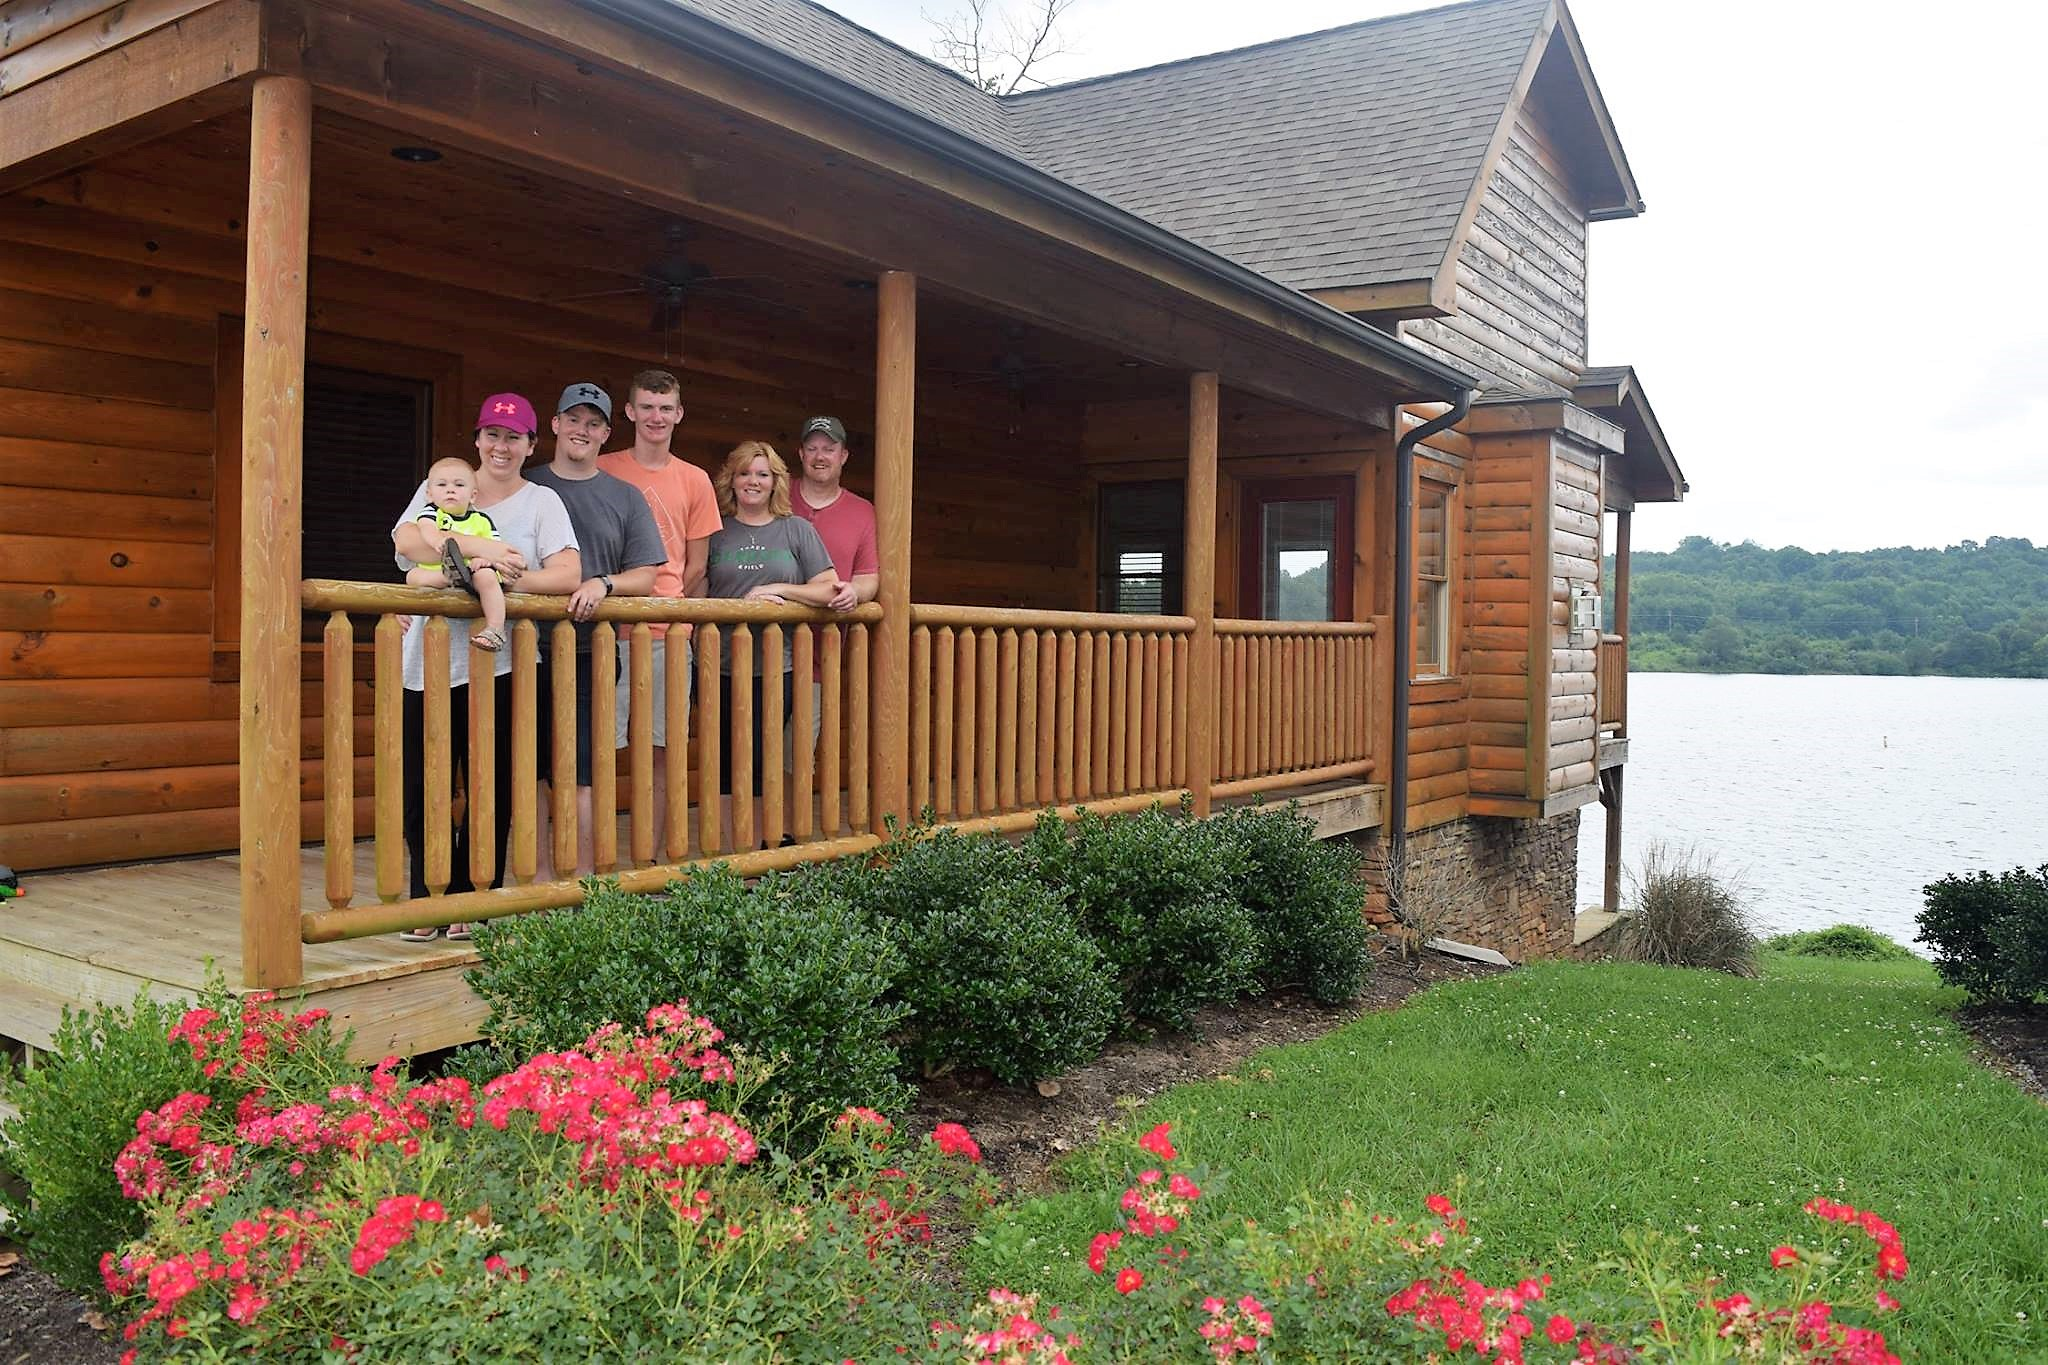 The Grand Seeley Adventure, Family Vacation, hike and lake day, family photo